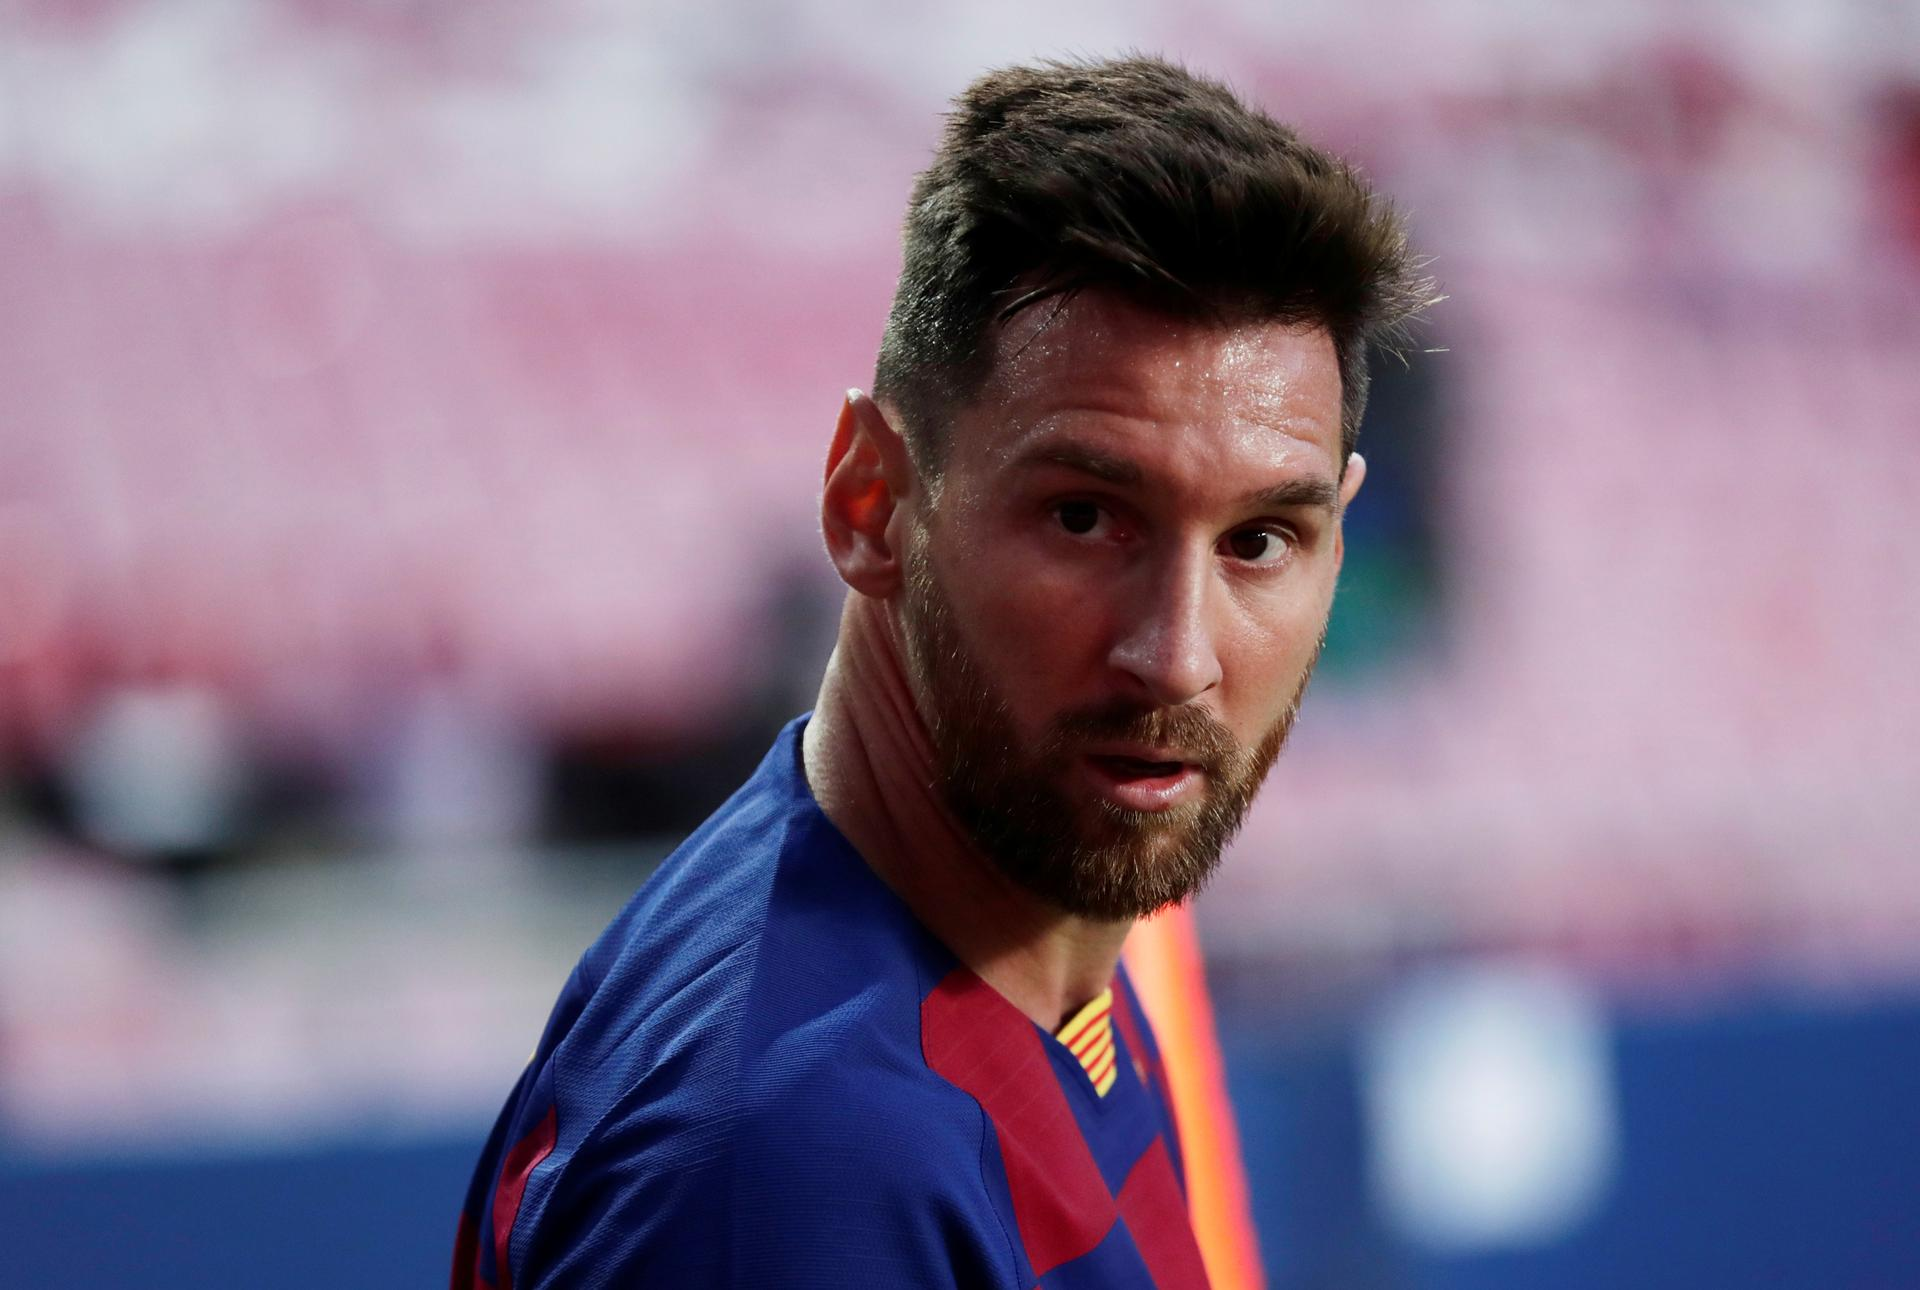 Barca in new turmoil after Messi tells club he wants to leave